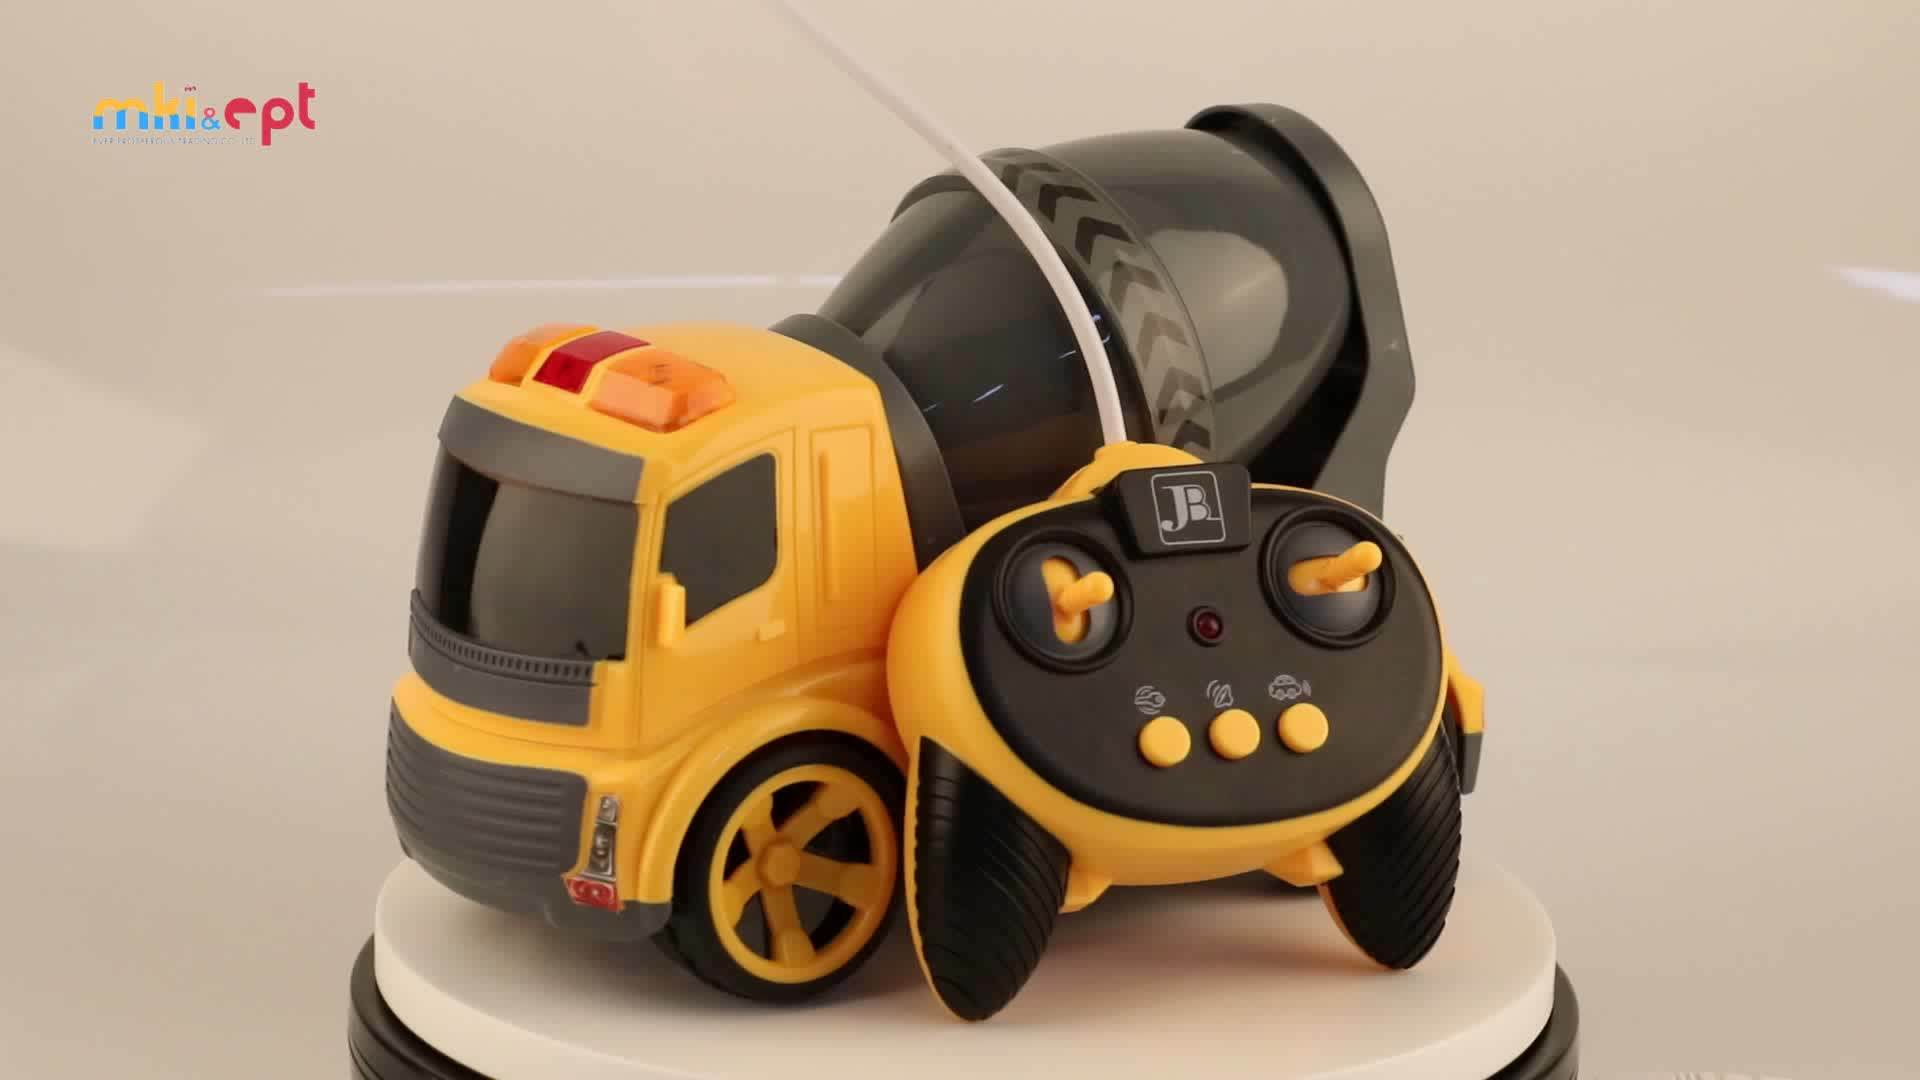 Battery Operated New Design Yellow RC Remote Control Truck Toy For Sale